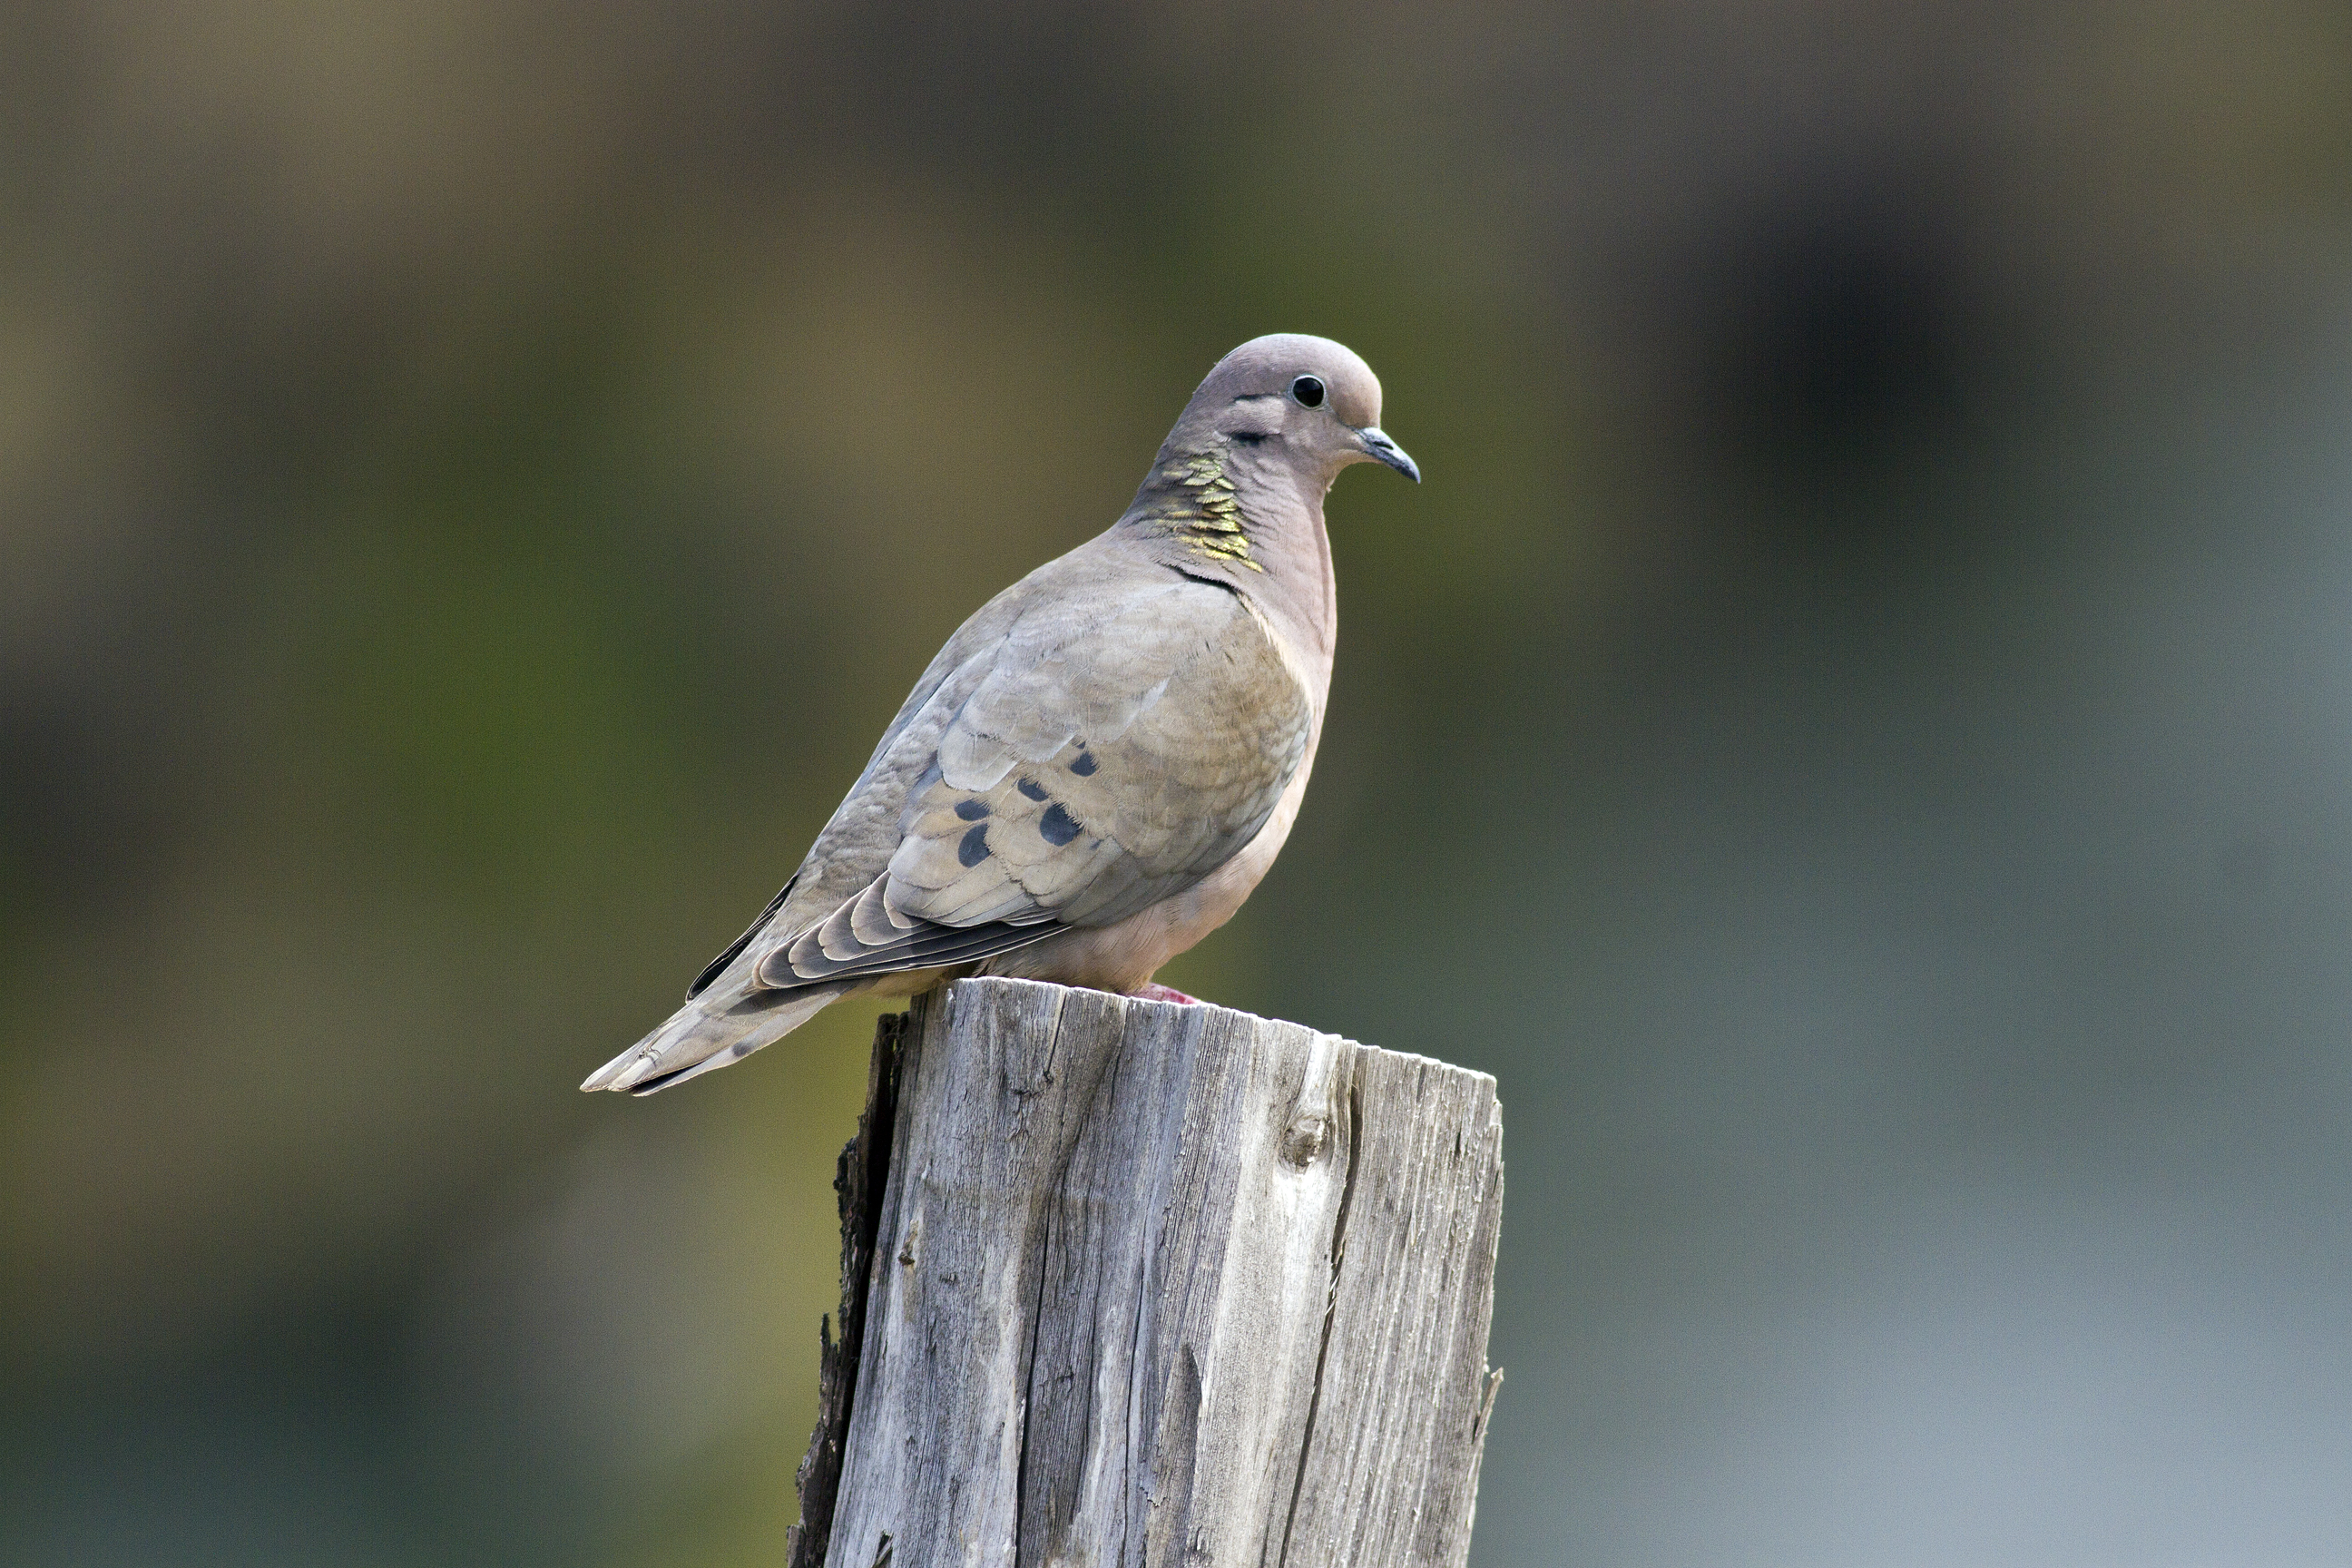 Eared dove, at side of road